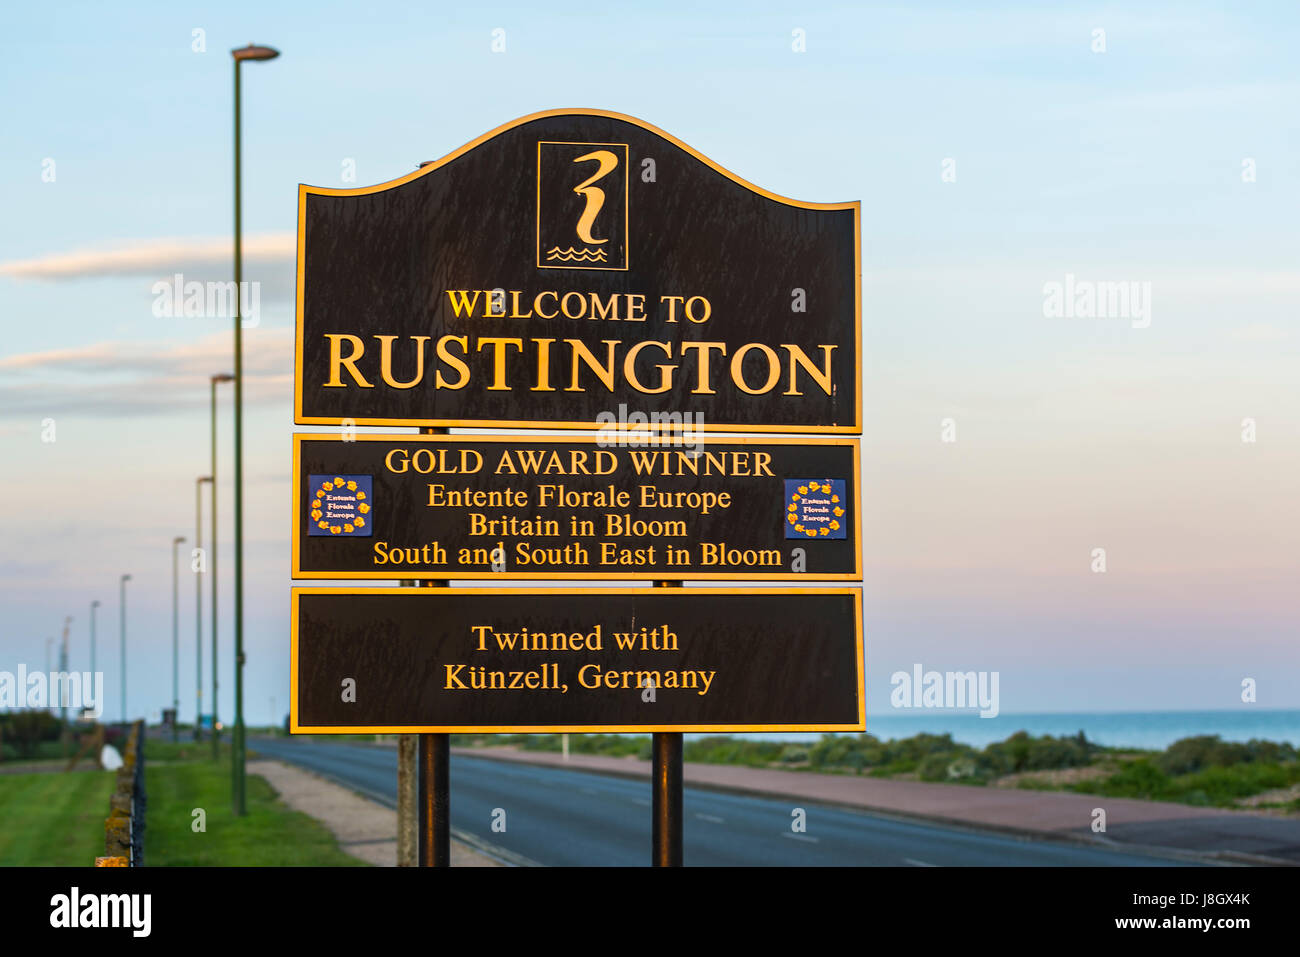 Welcome to Rustington sign on the seafront road in Rustington, West Sussex, England, UK. - Stock Image